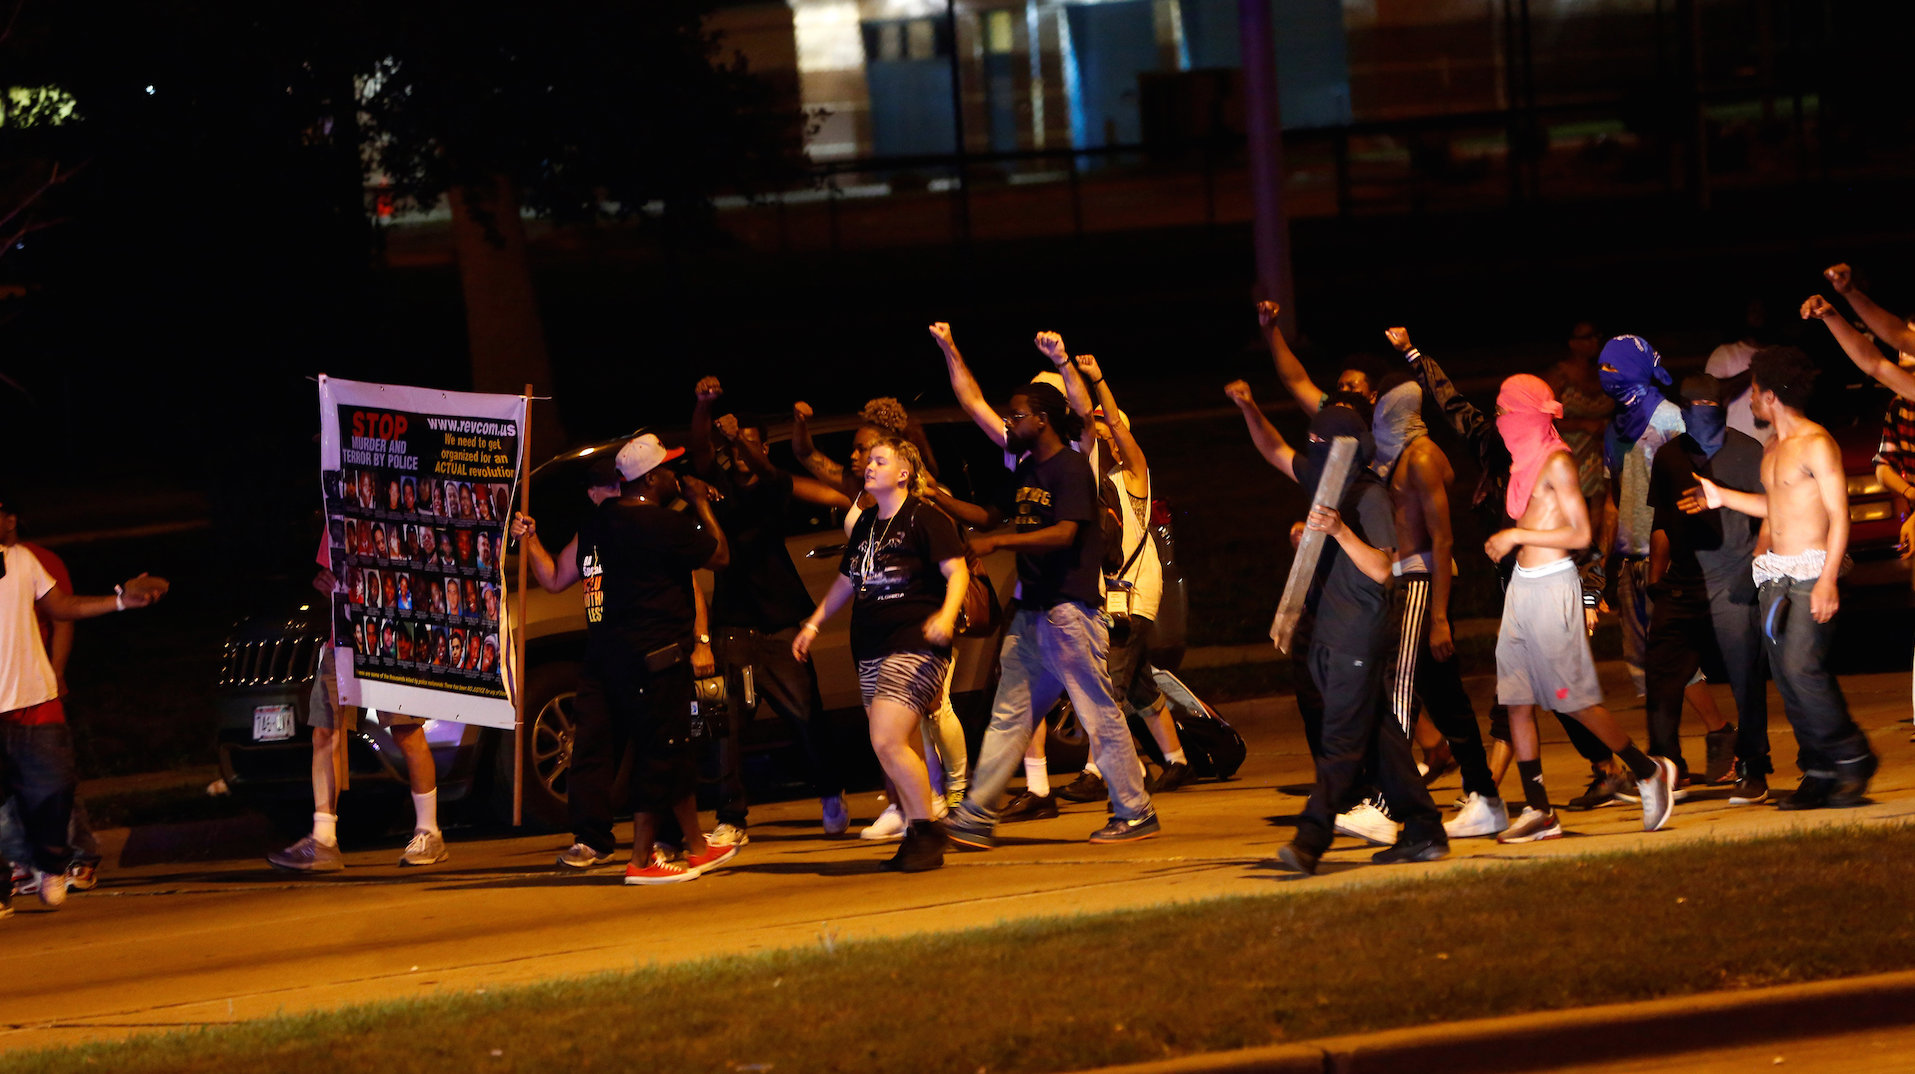 Milwaukee protests turn violent after officer fatally shoots fleeing man